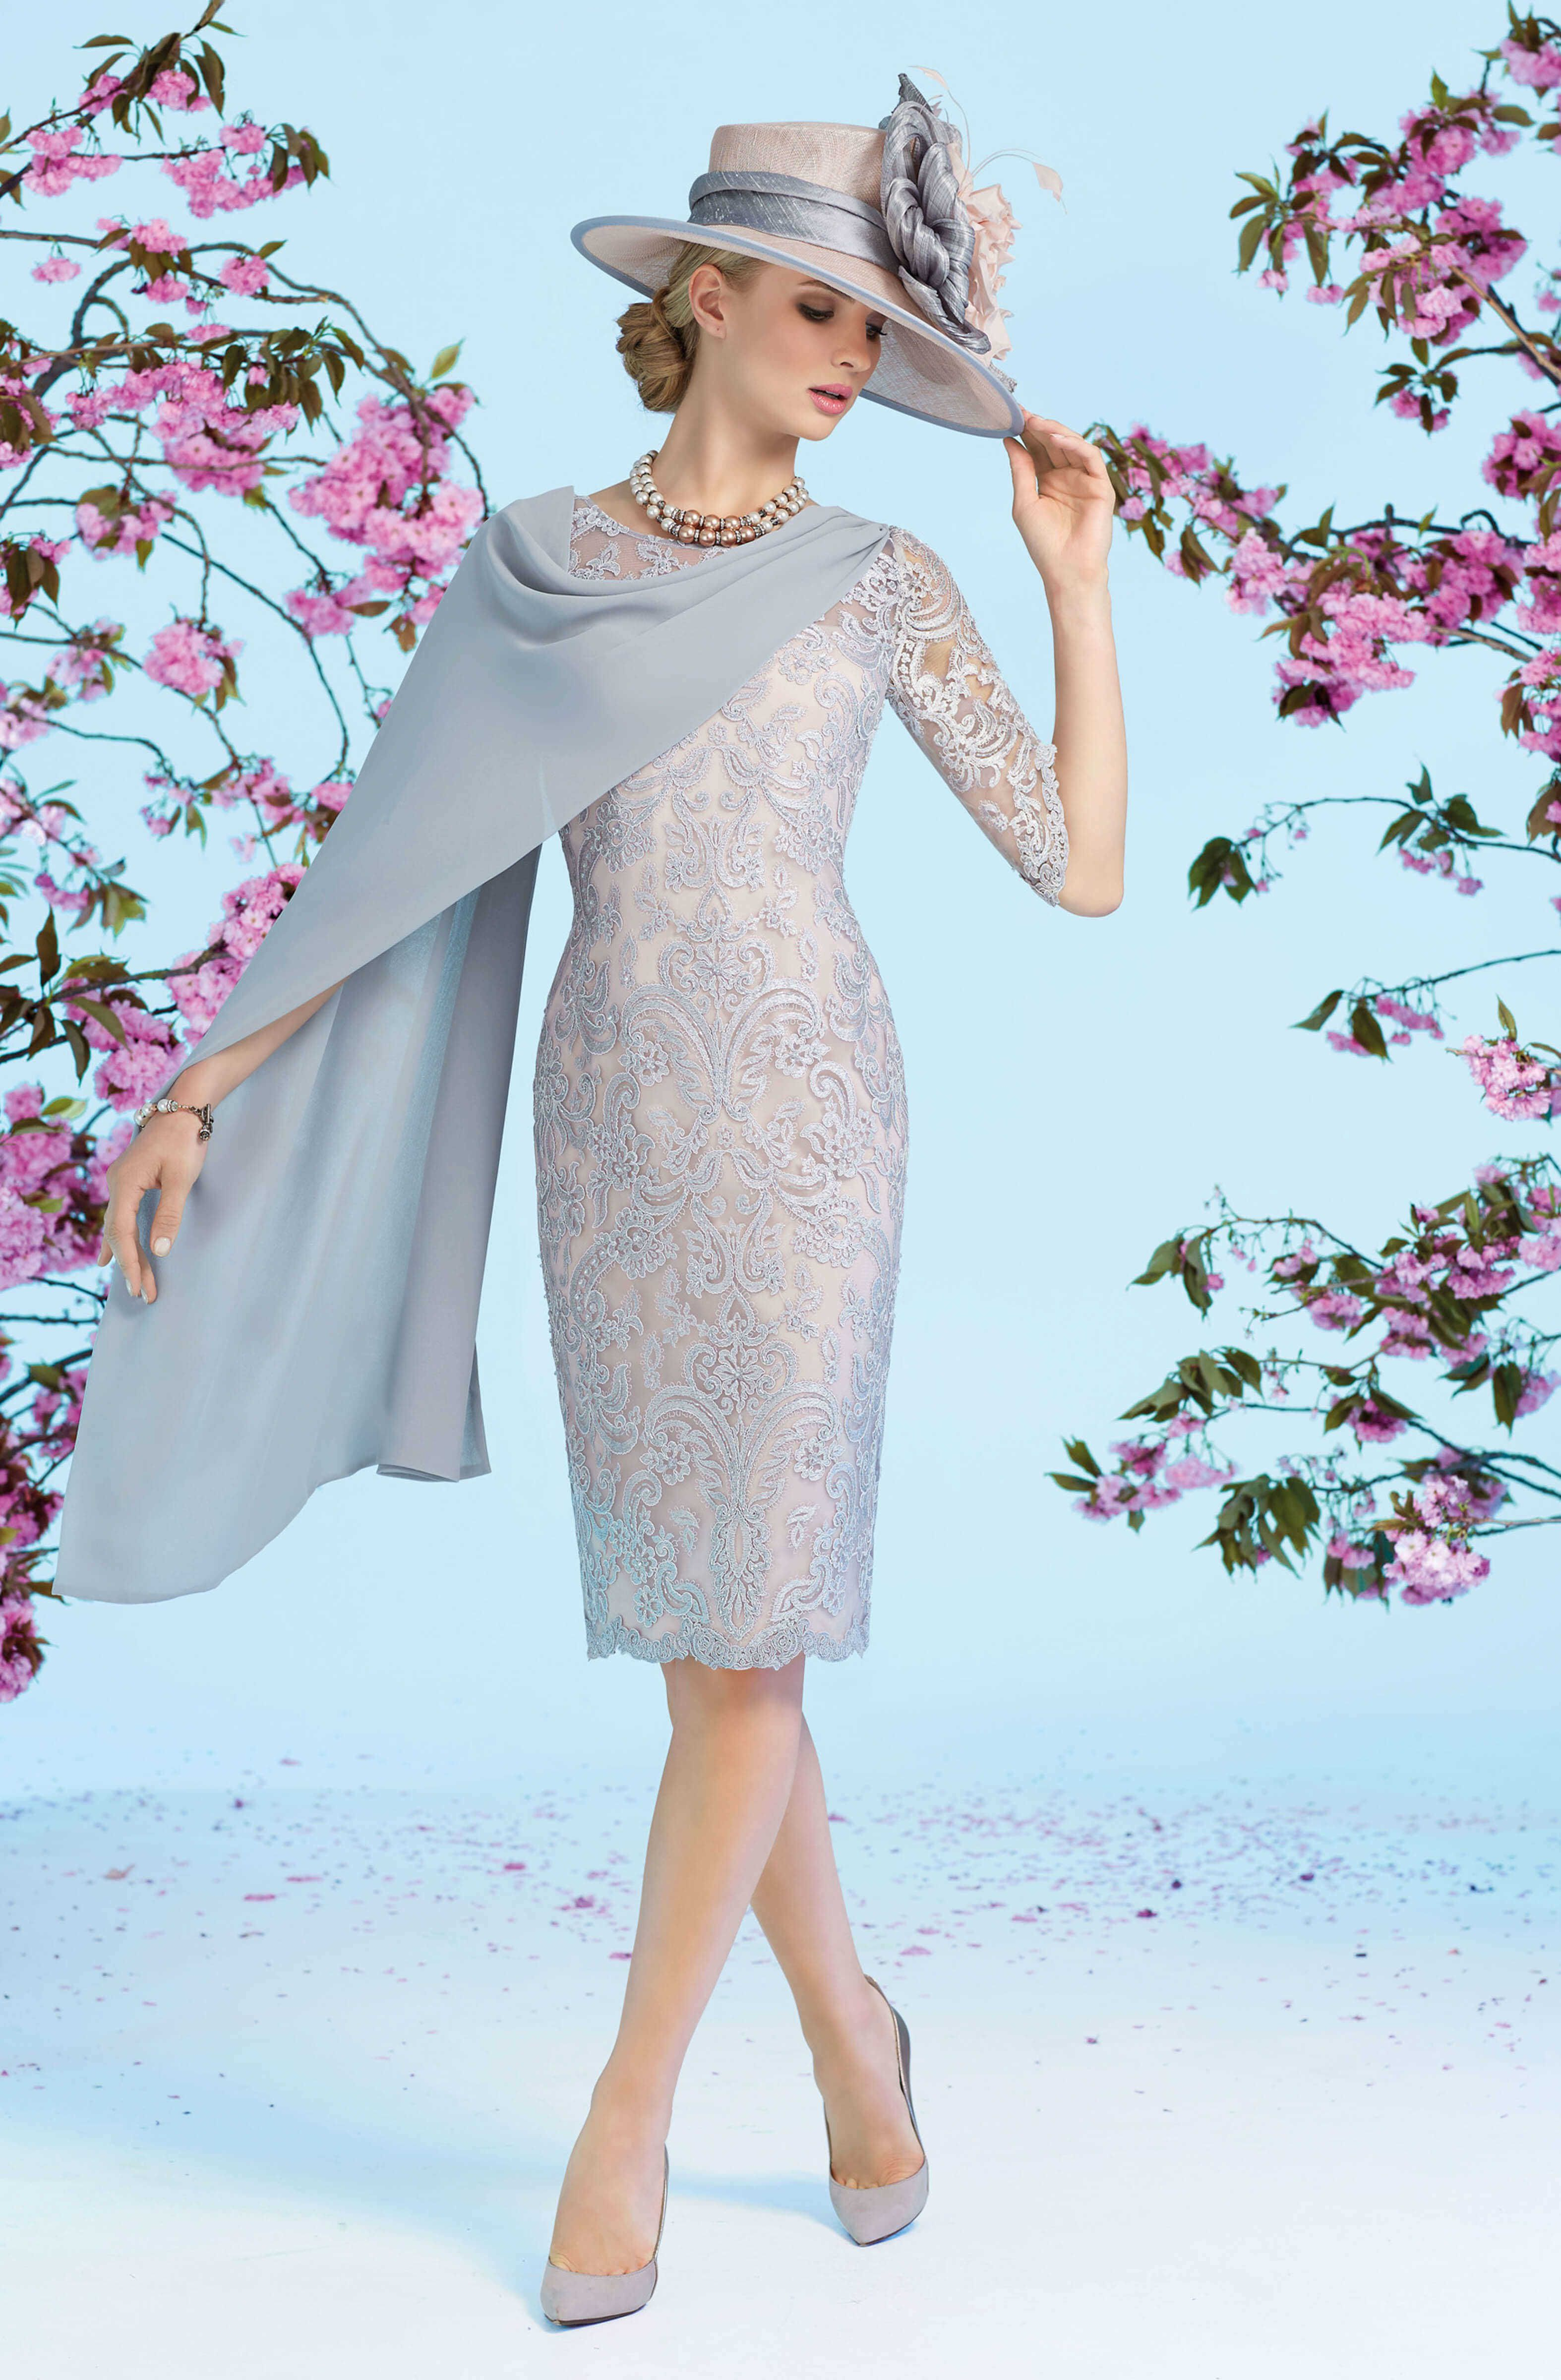 Contemporary Evening Wedding Outfits Collection - All Wedding ...